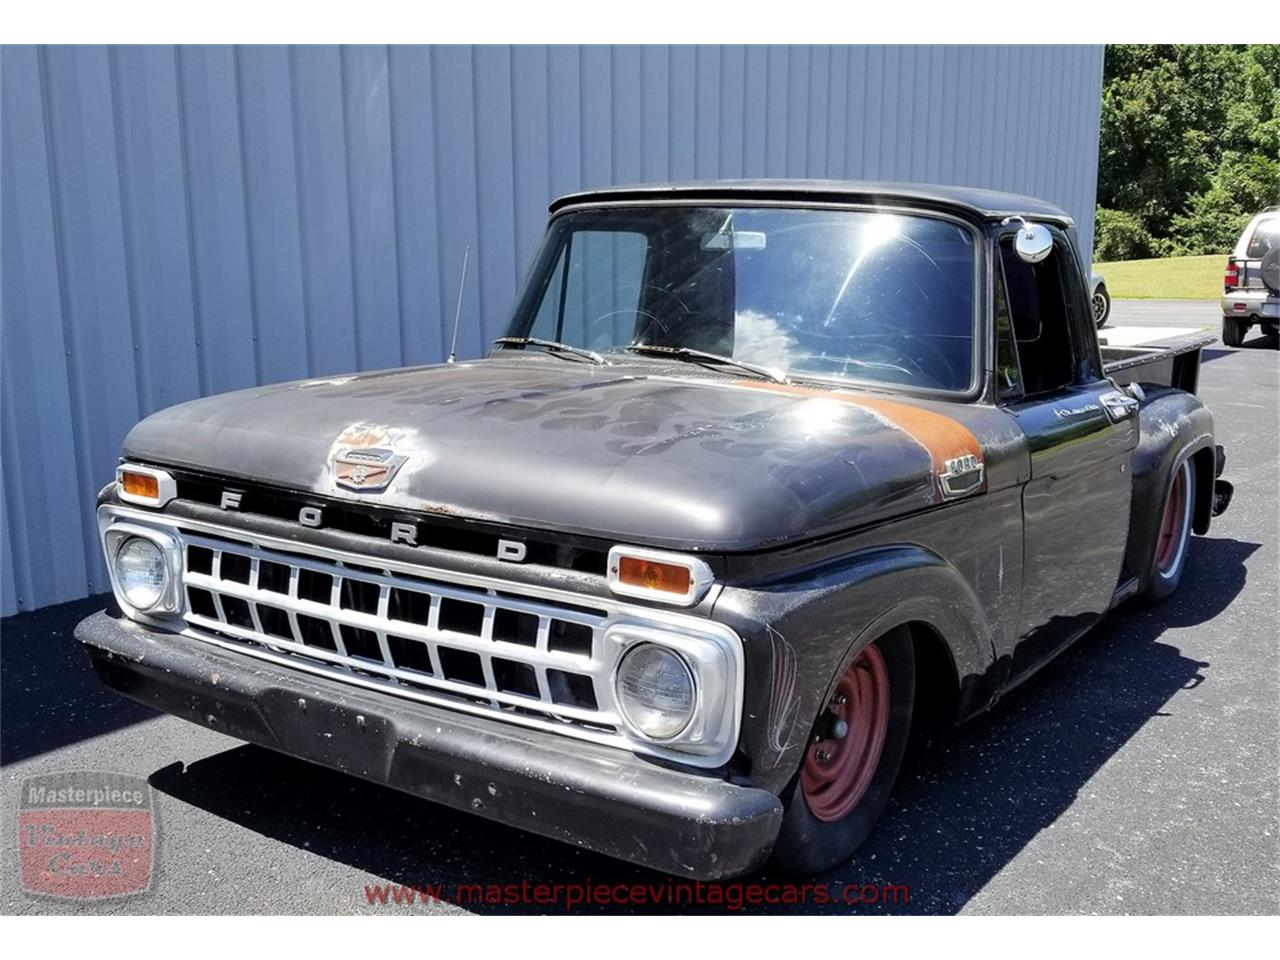 Large Picture of Classic '63 Ford F100 - $7,950.00 Offered by Masterpiece Vintage Cars - NVI8